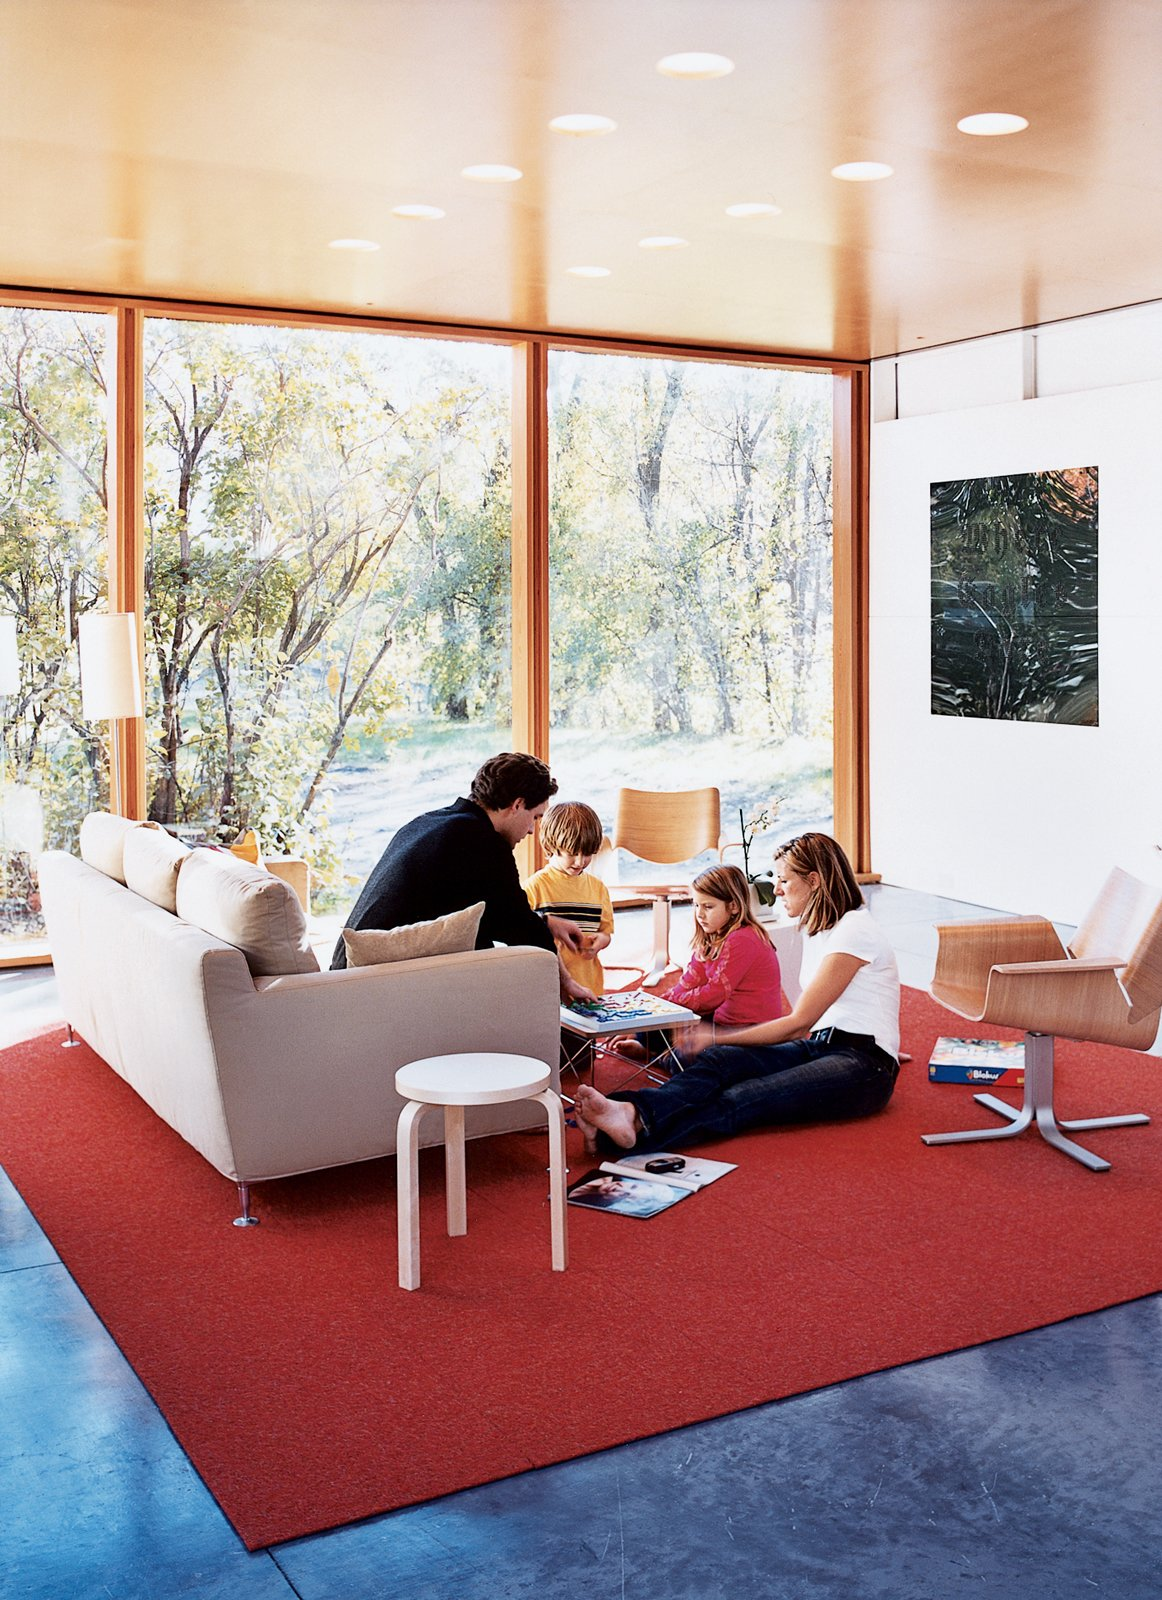 """Living Room, Sofa, Chair, and Recessed Lighting Having lived, he says, in """"a number of houses where the living room is the most adorned and the least used,"""" it was important for Lazor to create a functional family living space. As the gathering above attests, it worked. The carpet is by InterfaceFLOR, and the armchairs by Blu Dot.  Photos from How to Play FlatPak"""